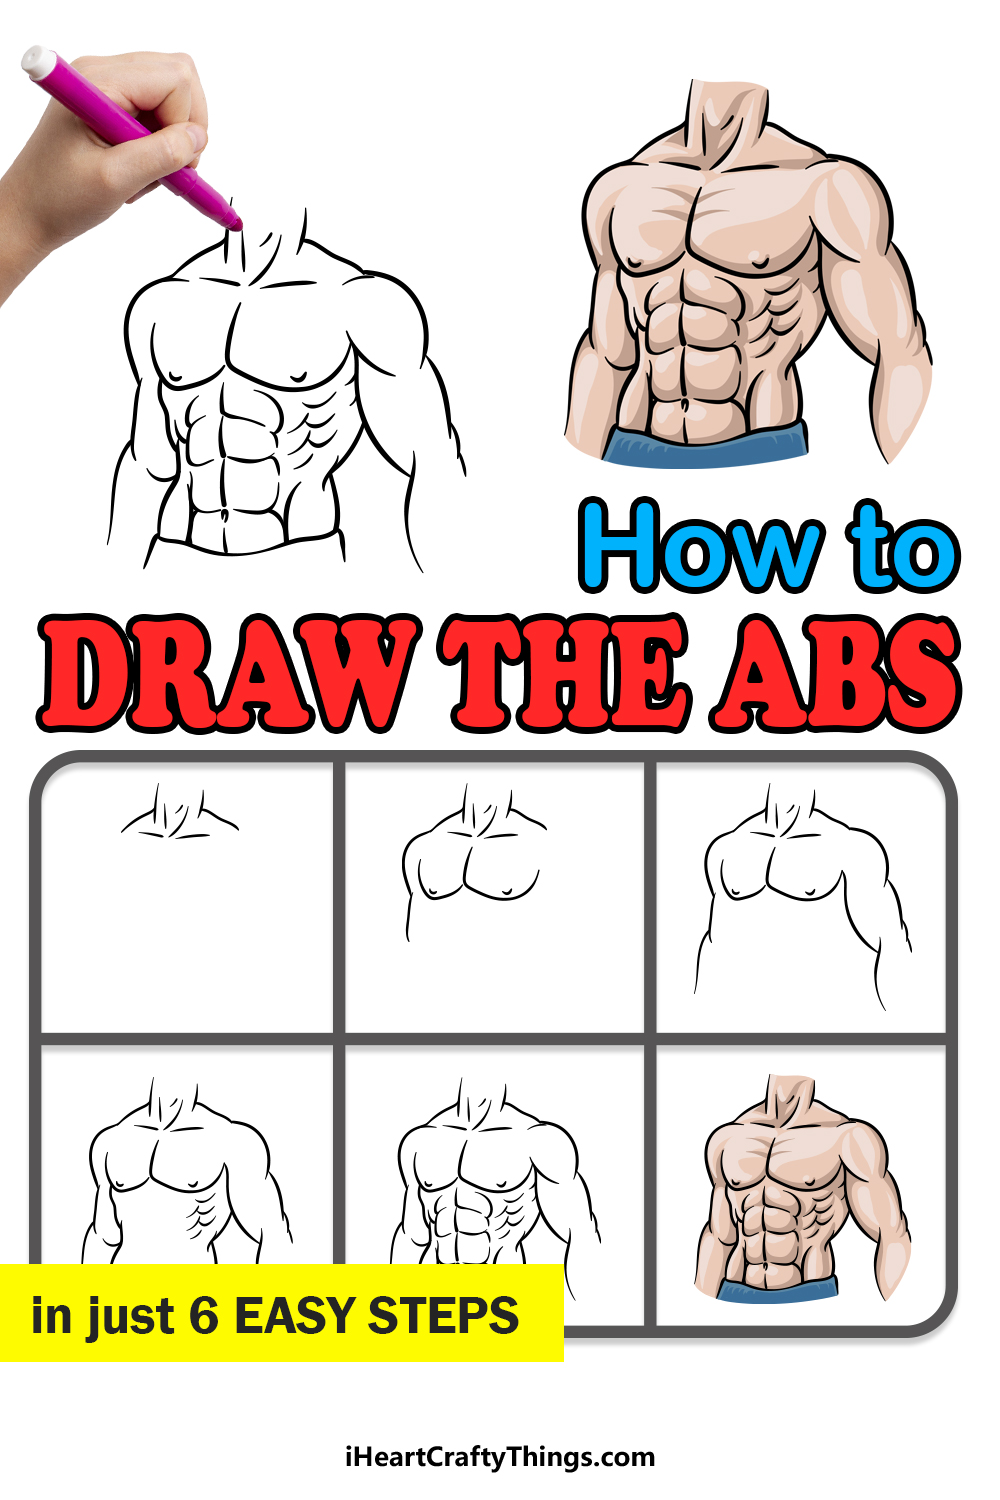 how to draw the abs in 6 easy steps